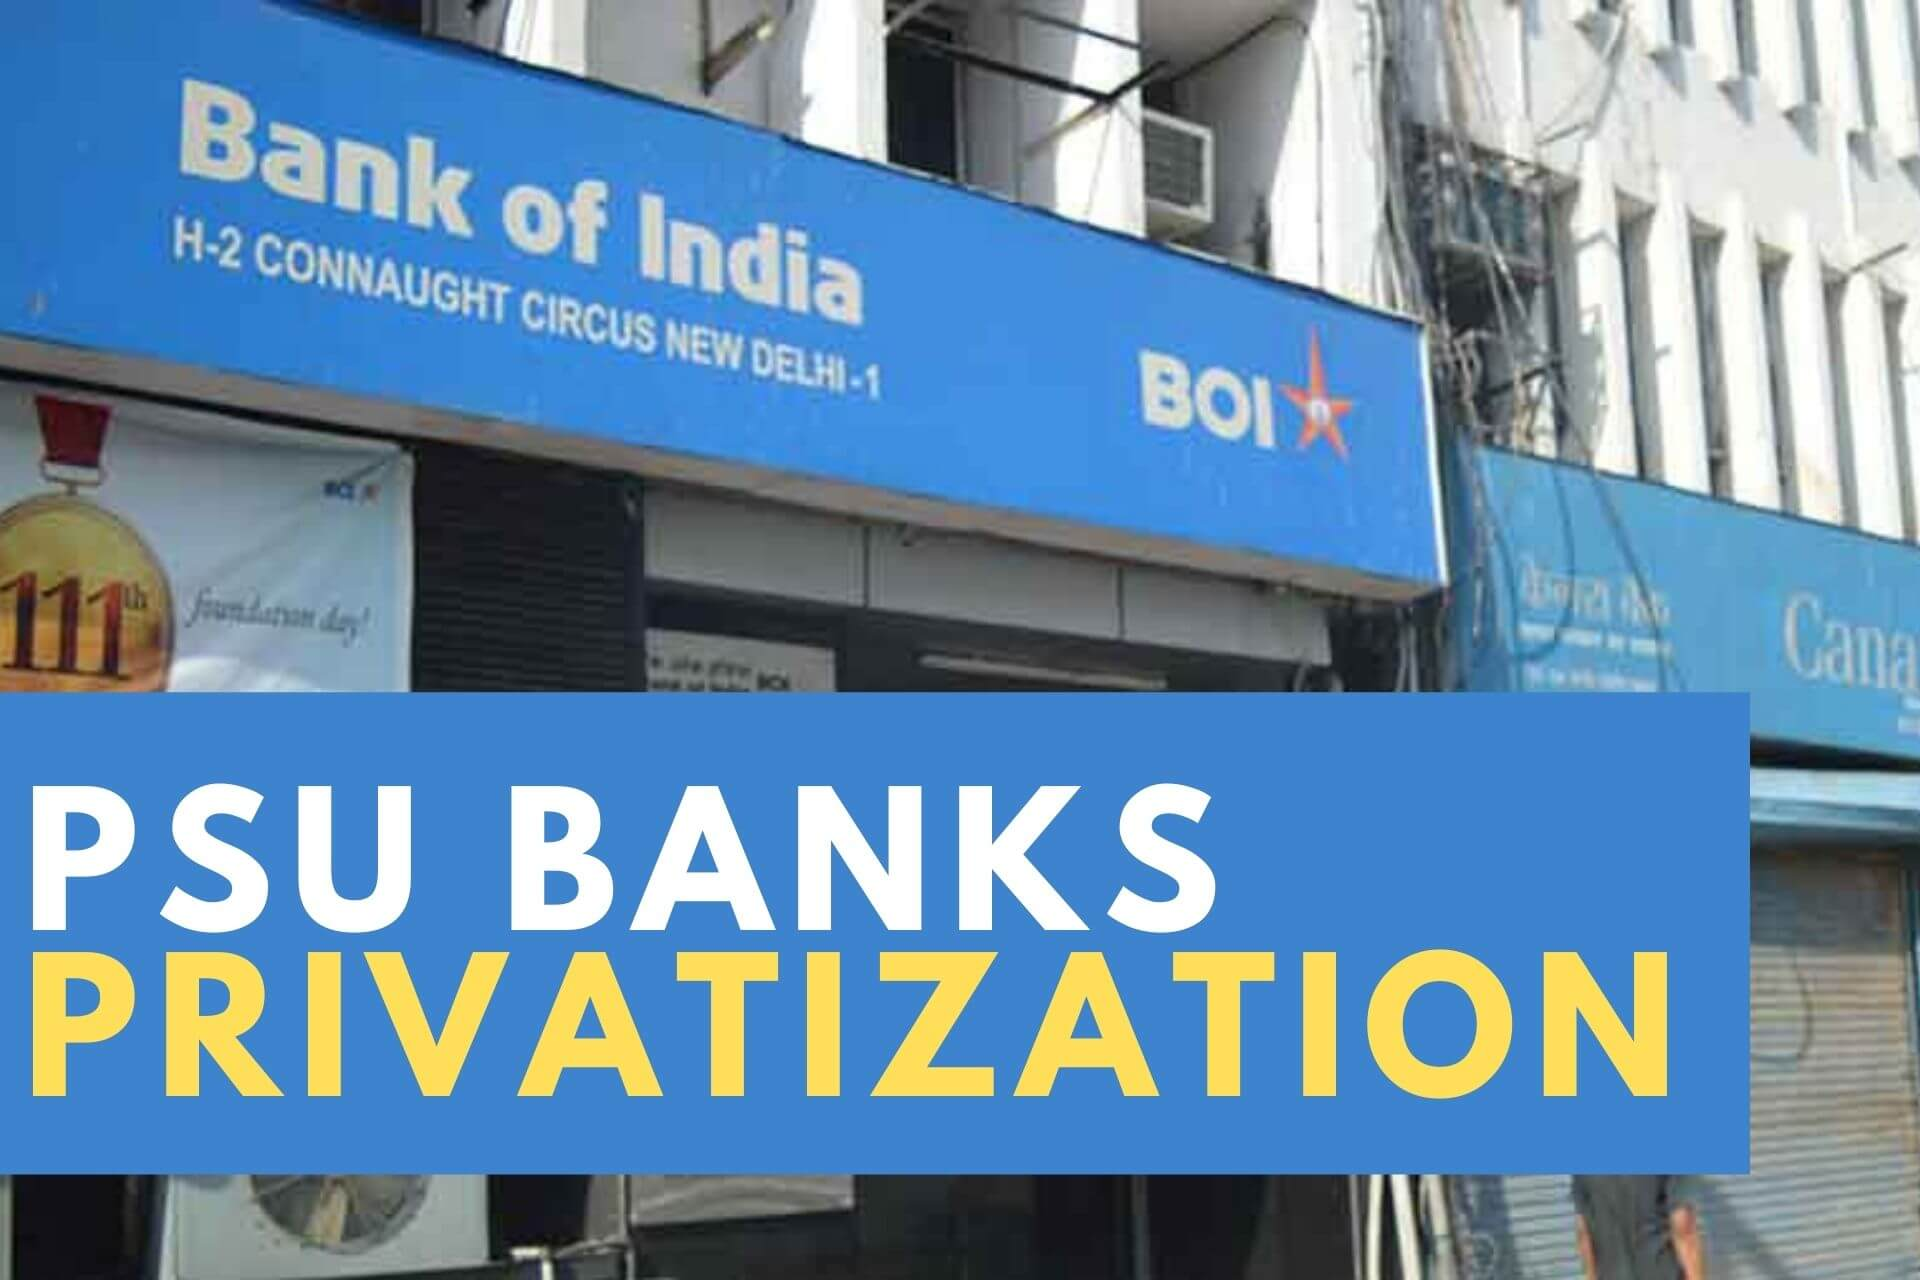 Why Privatization of PSU banks explained